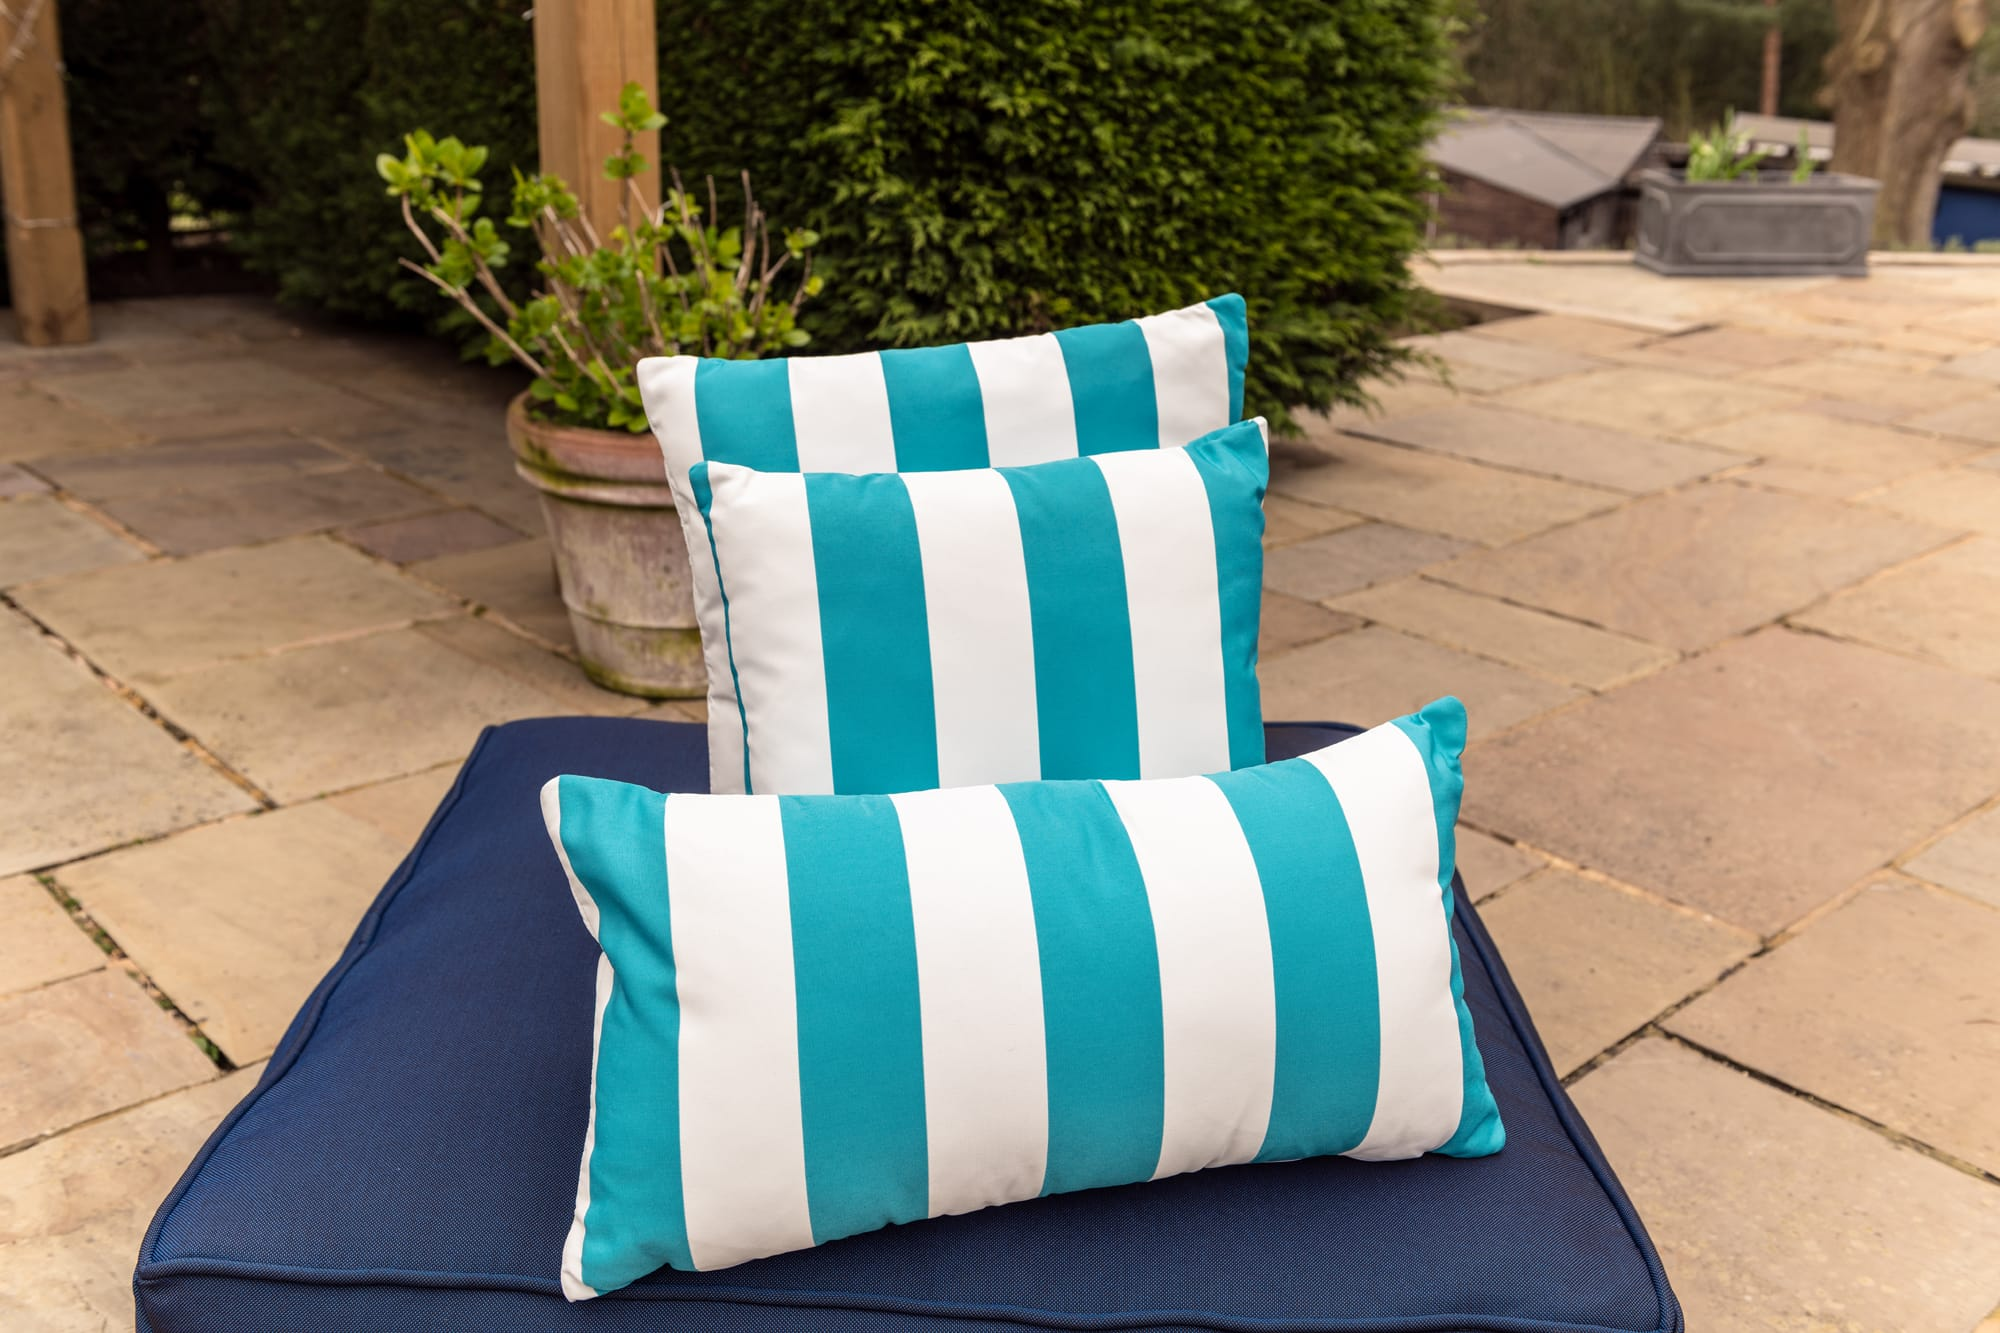 Luxury Cushion in Turquoise Candy Stripe Bean Bag Cushion armadillosun